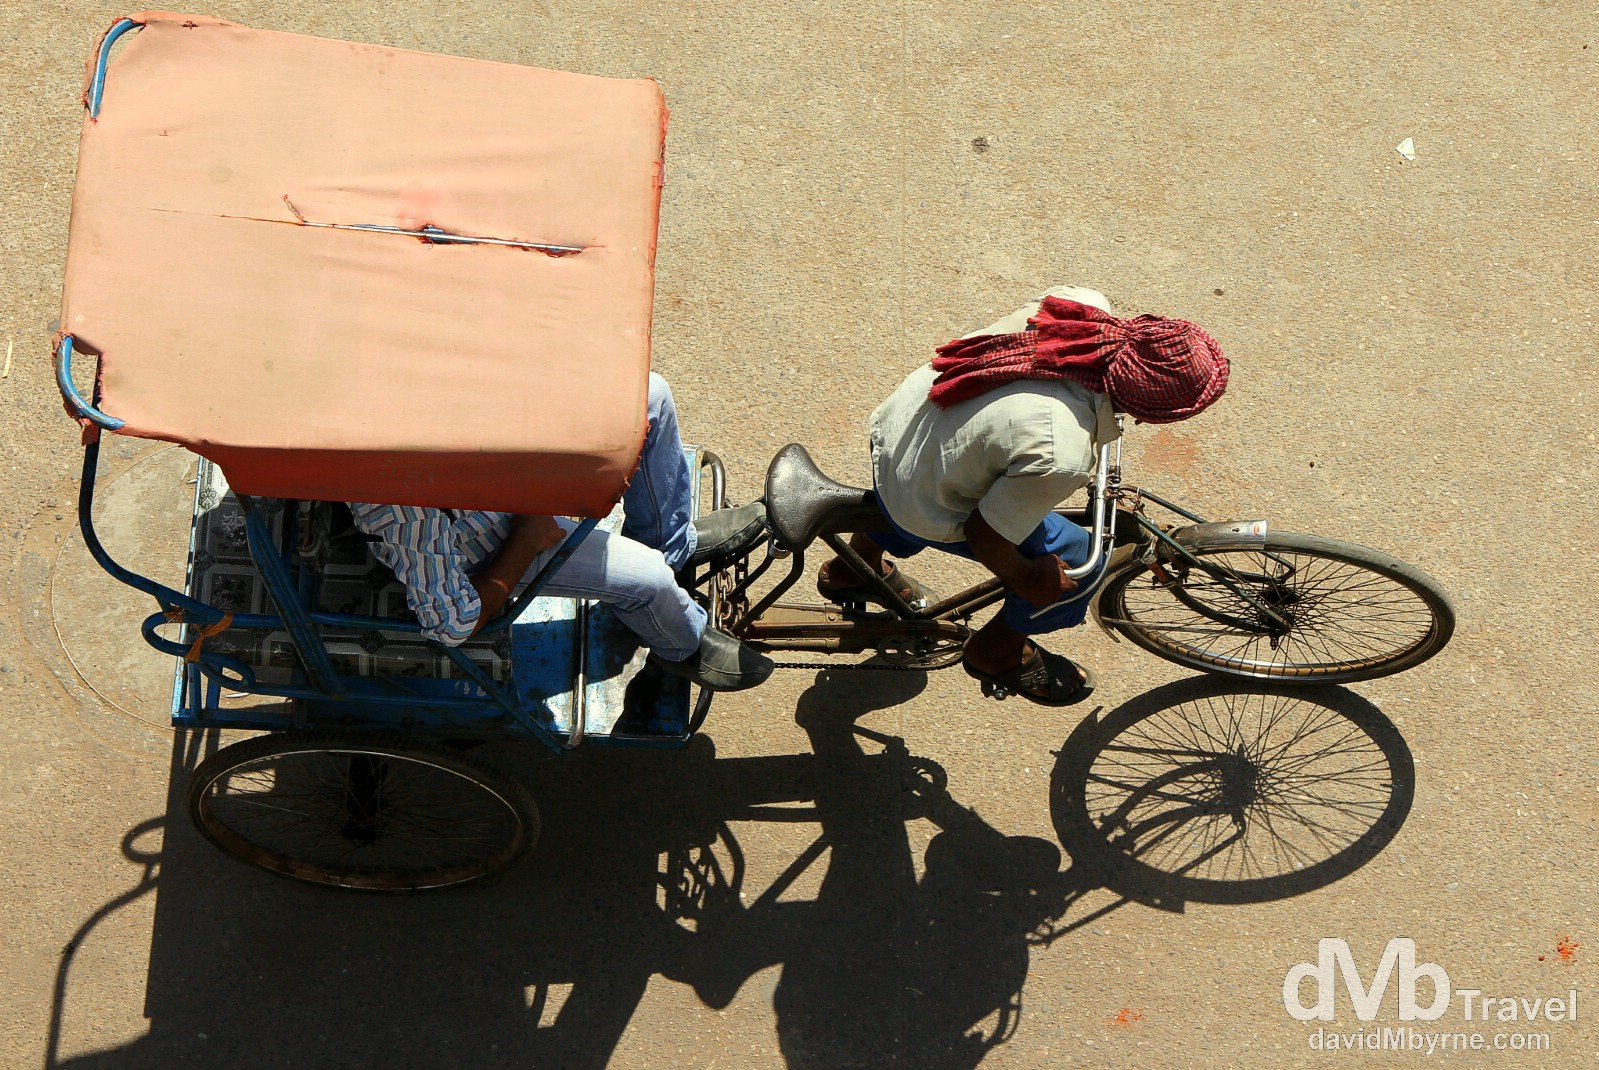 A cyclo (cycle rickshaw) on the Main Bazaar, Paharganj, Delhi, India. October 8th 2012.